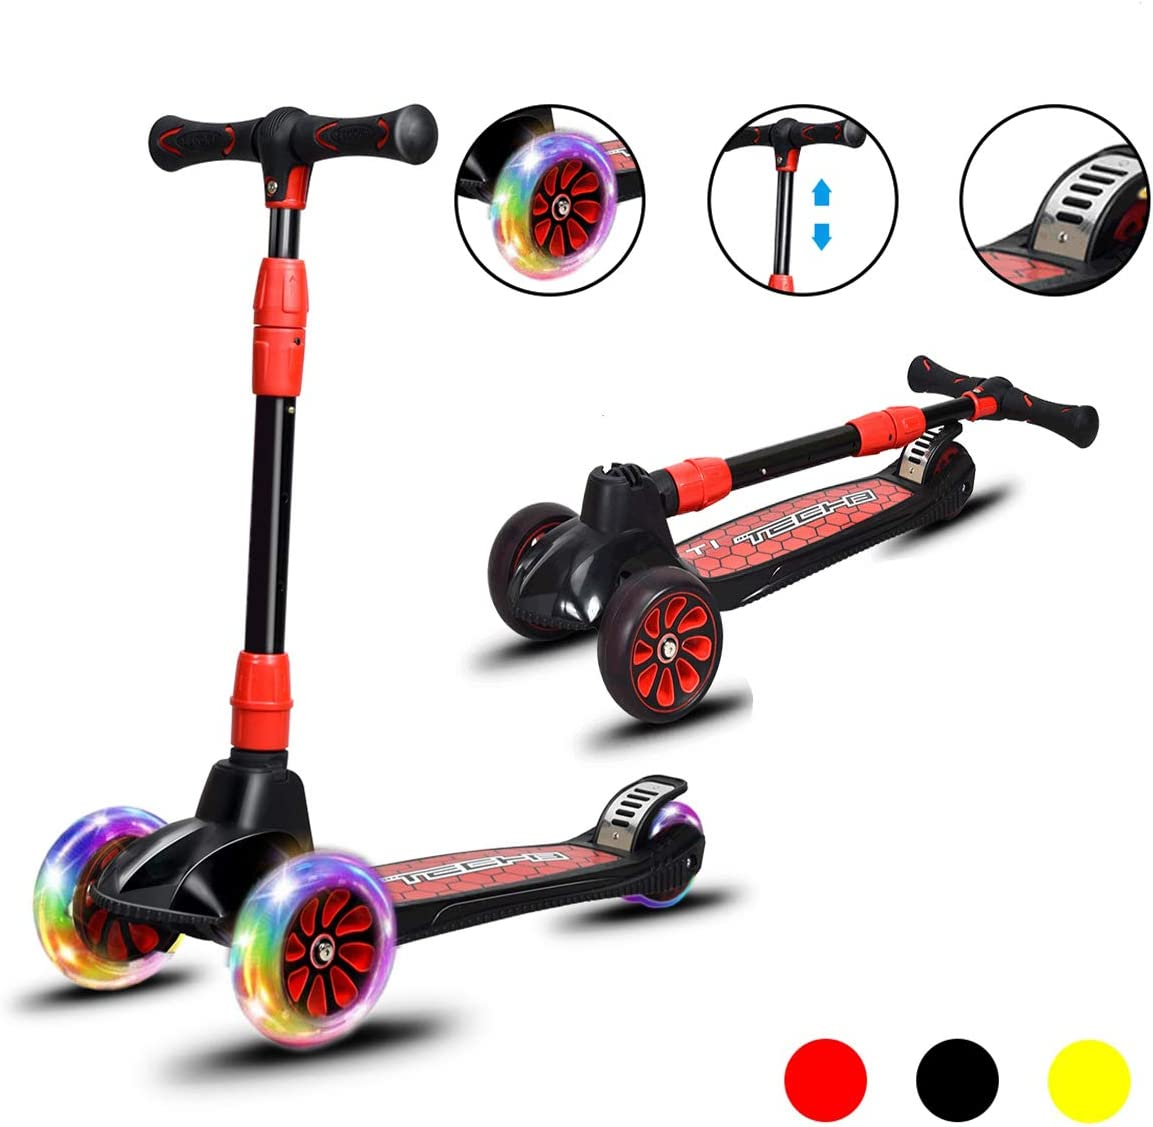 Costzon Folding Kick Scooter for Kids, Featuring Extra-Wide Non-Slip Deck, Deluxe 3 PU LED Light Wheels Scooter, 4 Adjustable Height Handle, for Boys Girls from 4 to13 Years Old